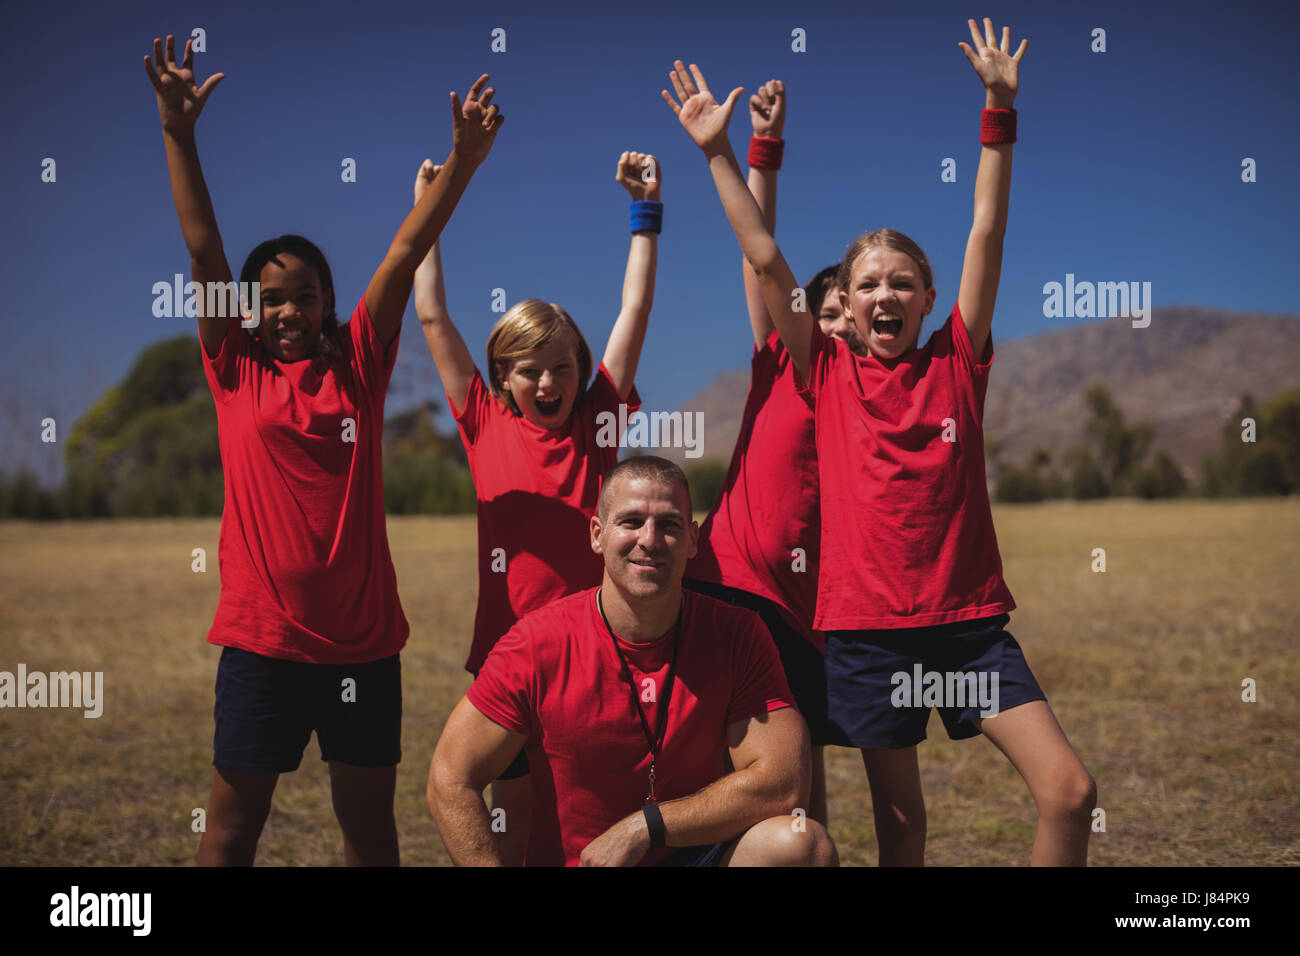 Portrait of trainer and kids relaxing in the boot camp - Stock Image